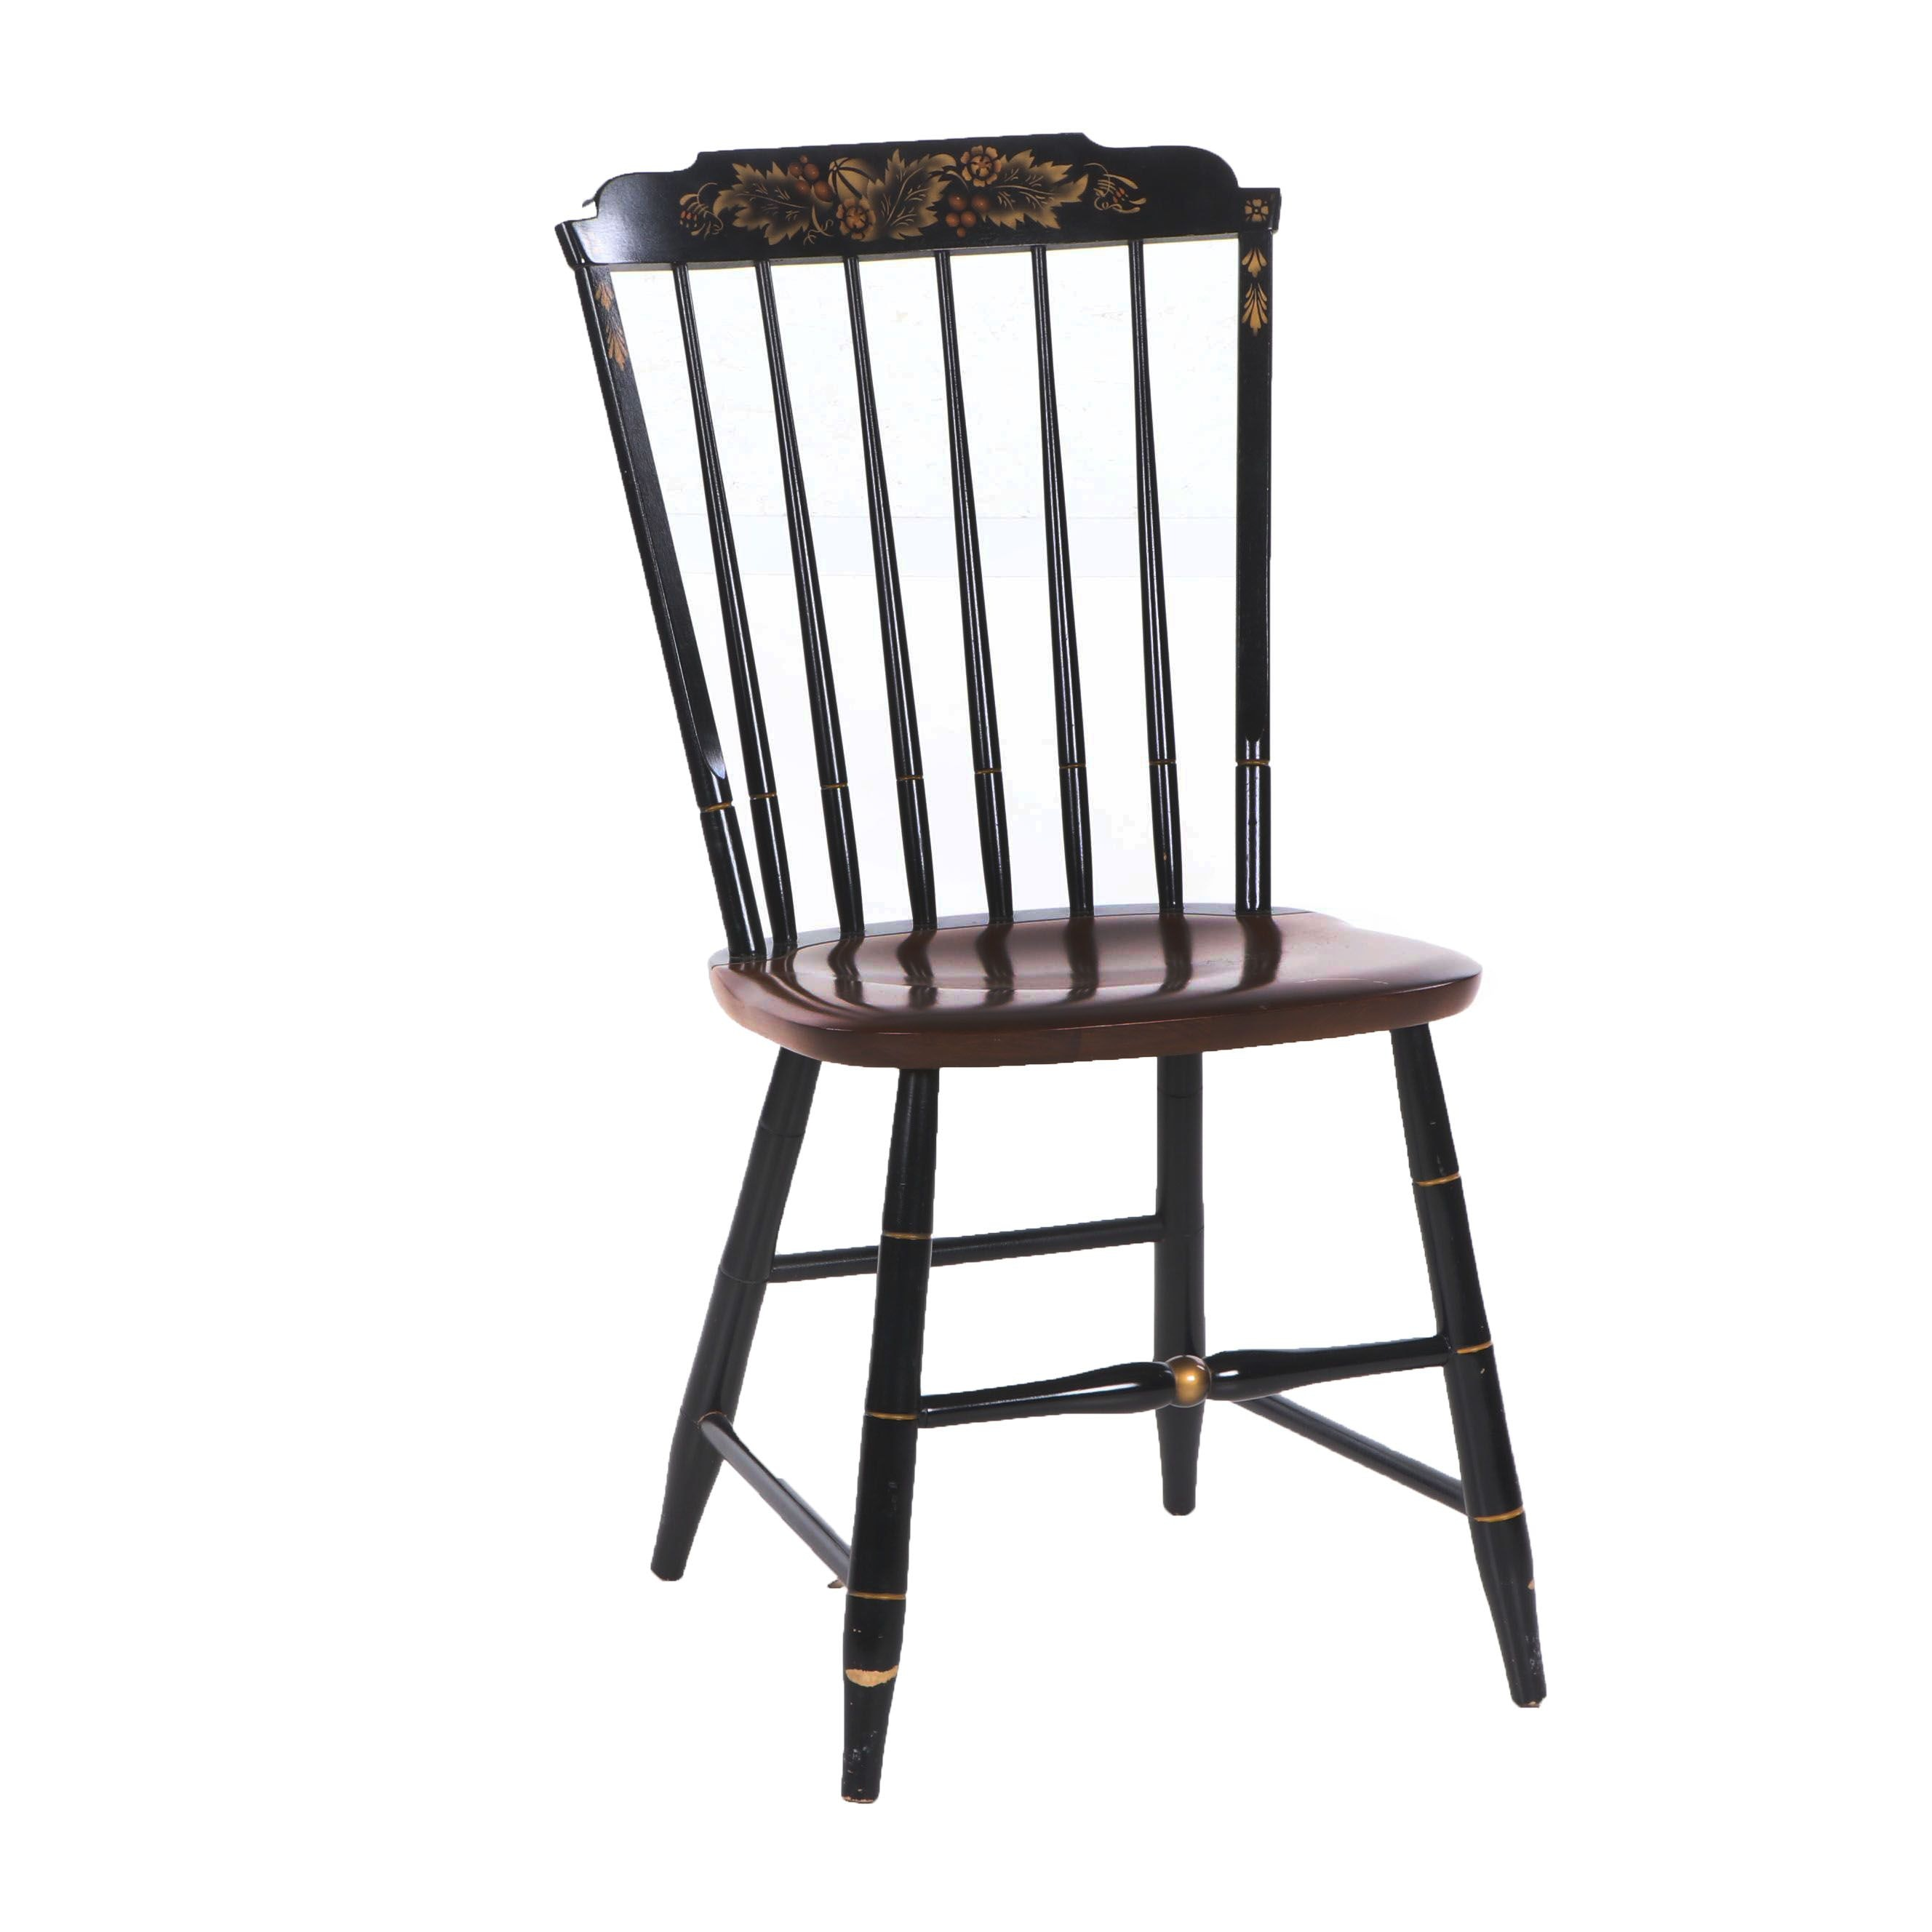 Hitchcock Stenciled Dining Chair, Mid to Late 20th Century